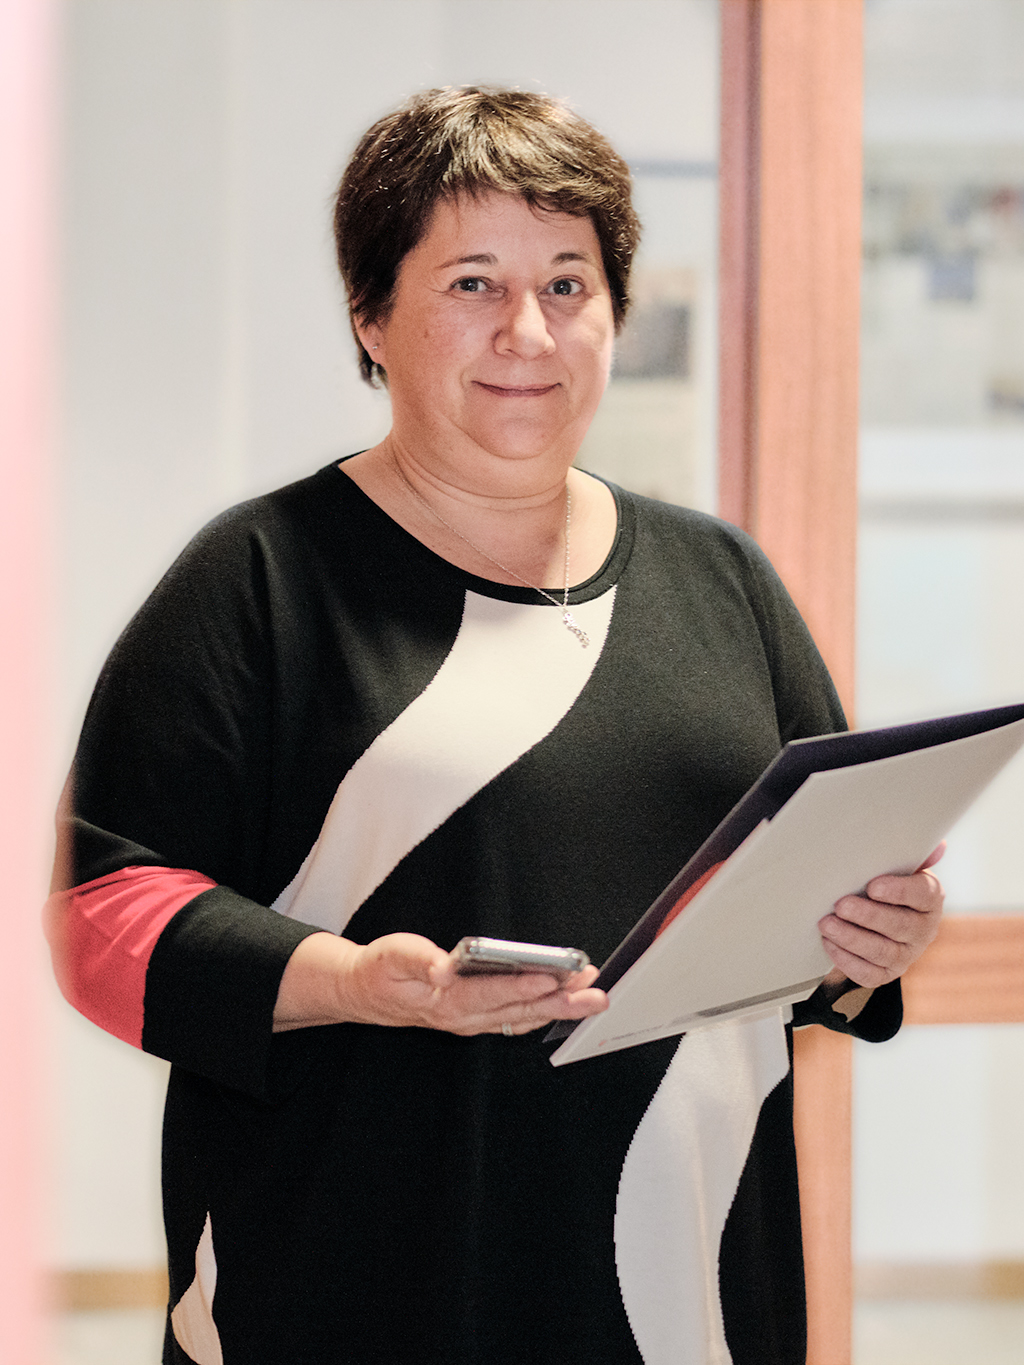 Chantal Zeimers